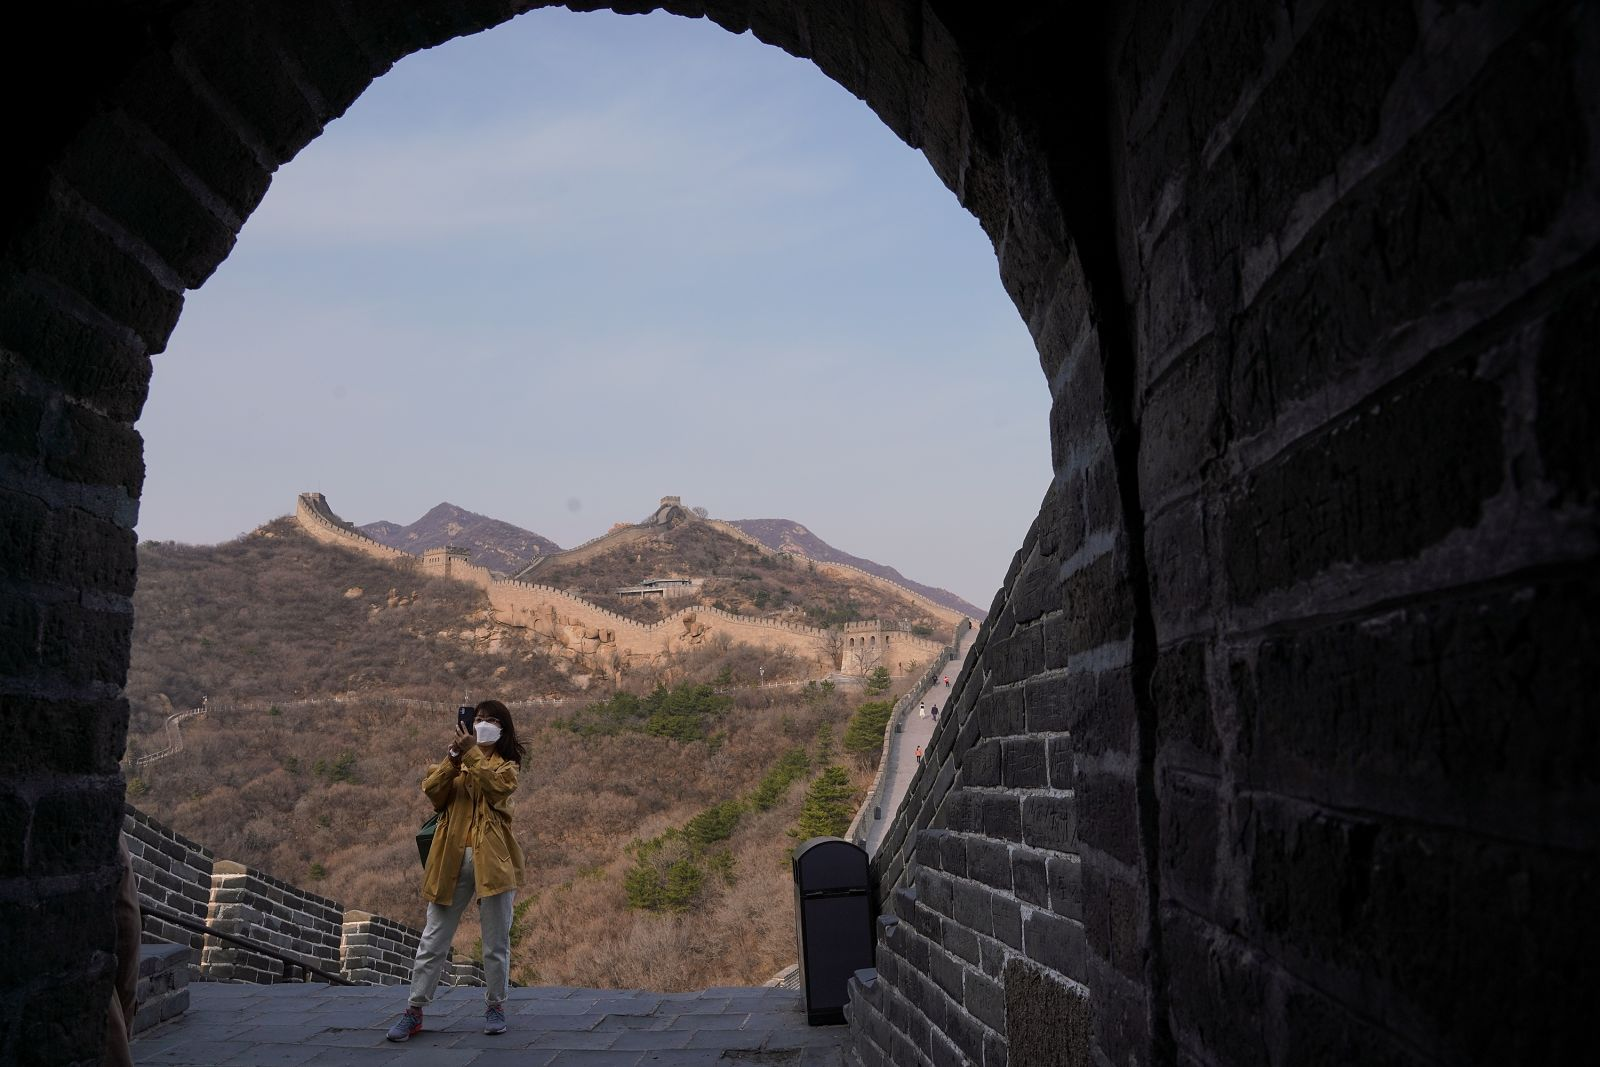 A tourist visiting the reopened Badaling section of the Great Wall of China on March 24.